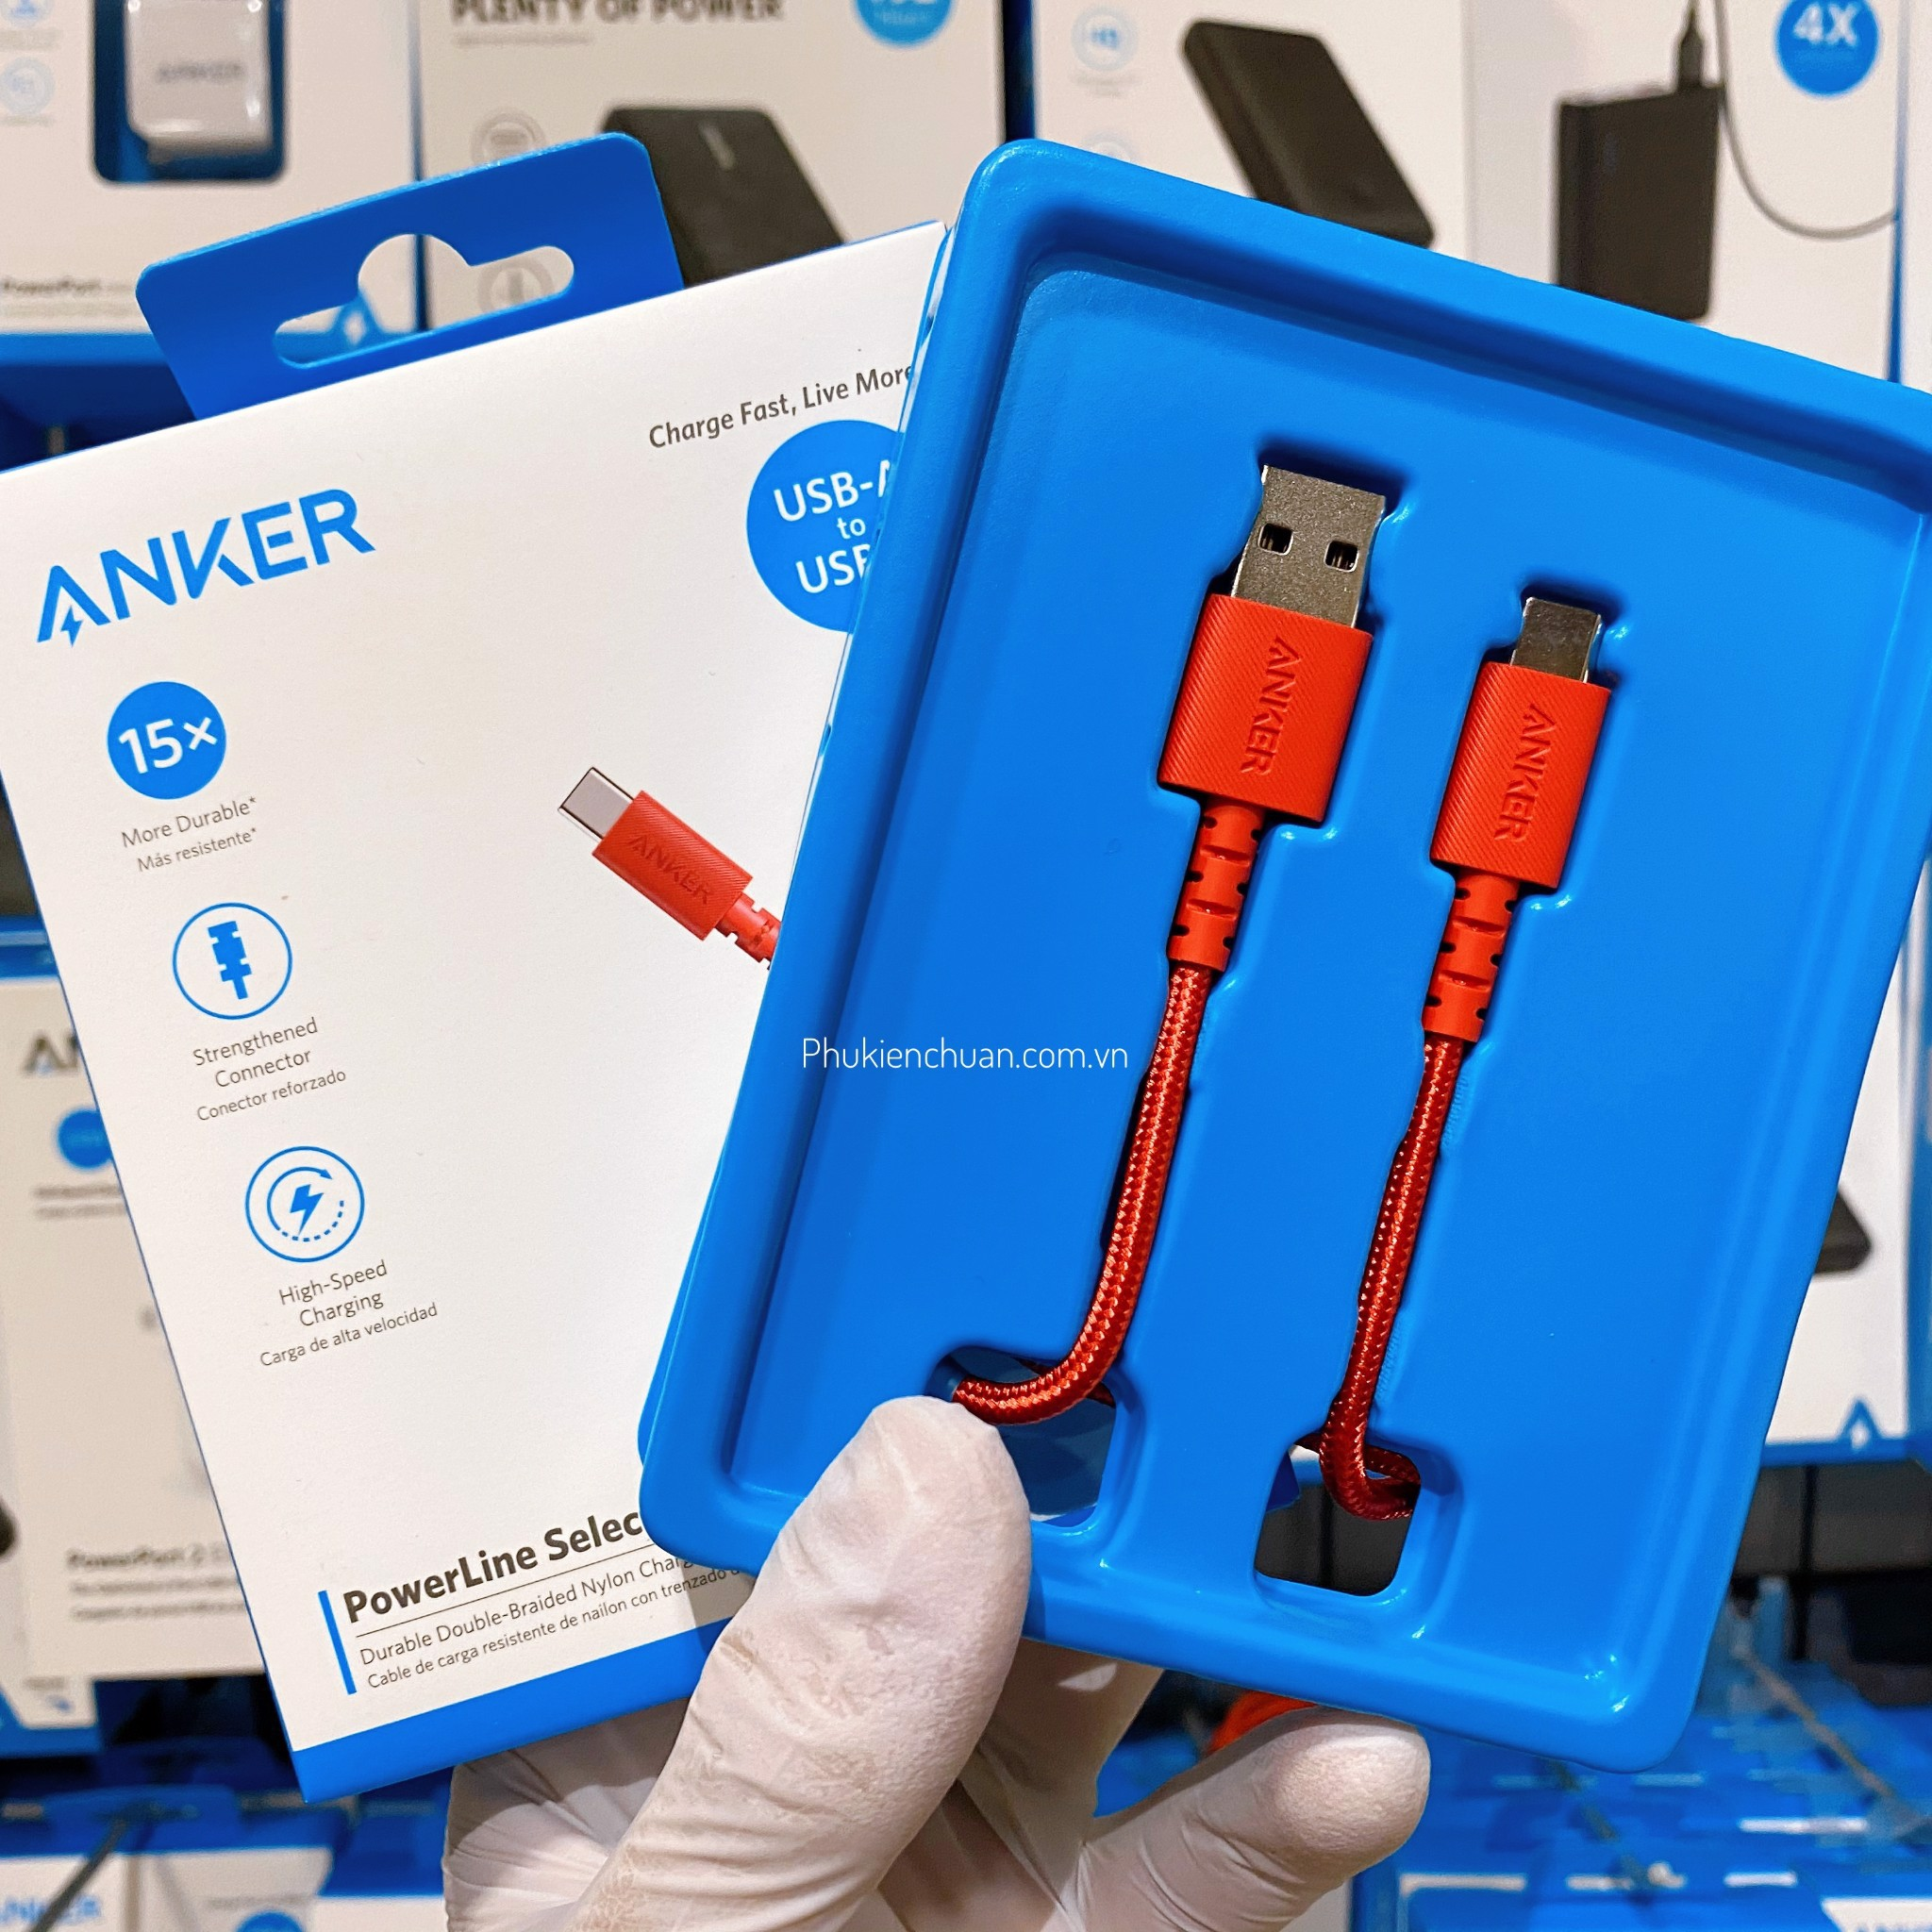 Cáp Type-C Anker PowerLine Select+ USB 2.0 dài 0.9m - Đỏ